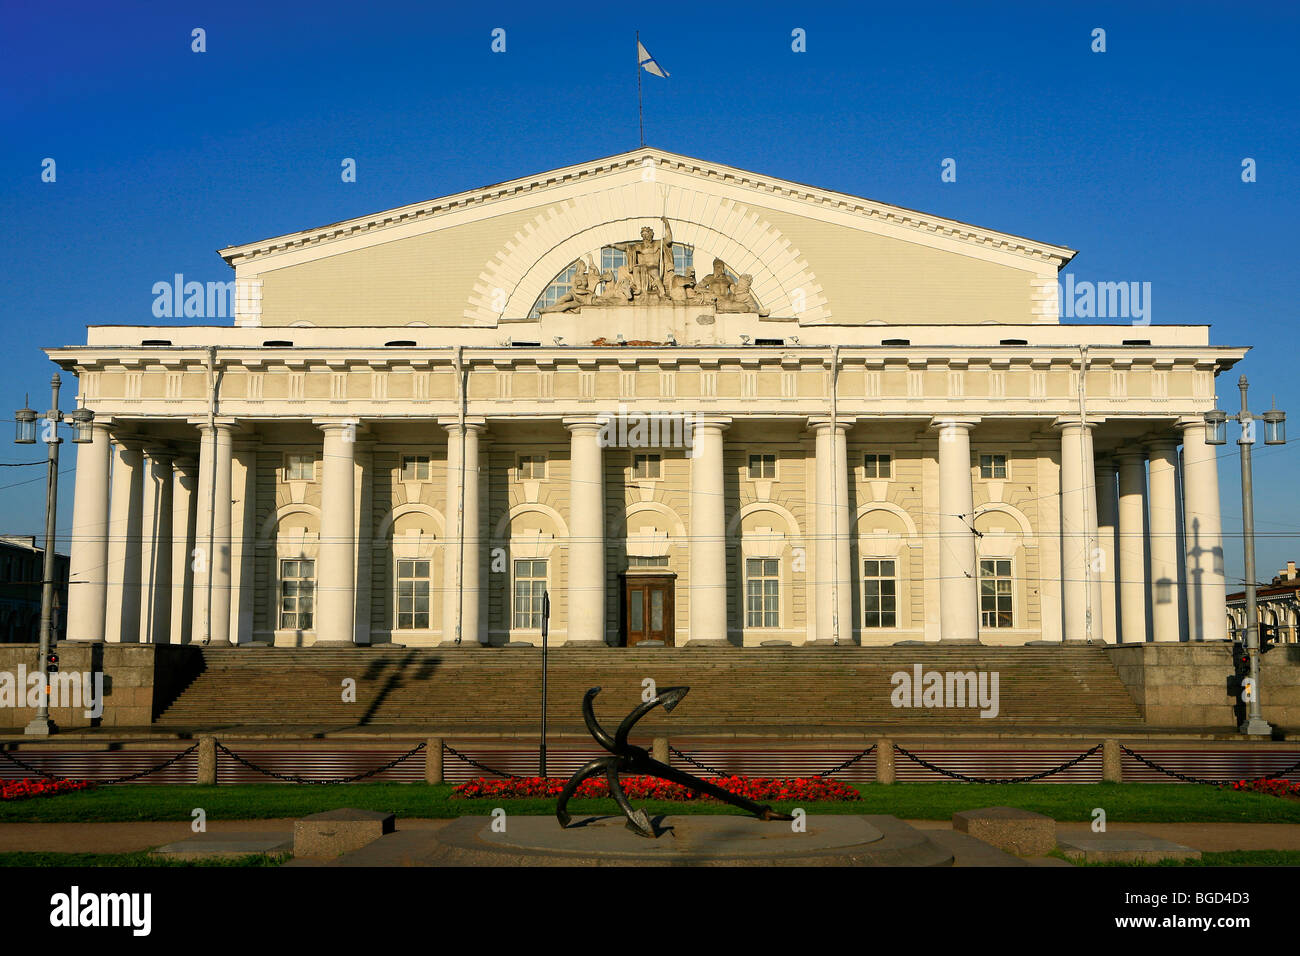 Facade of the 18th century Central Naval Museum in Saint Petersburg, Russia Stock Photo